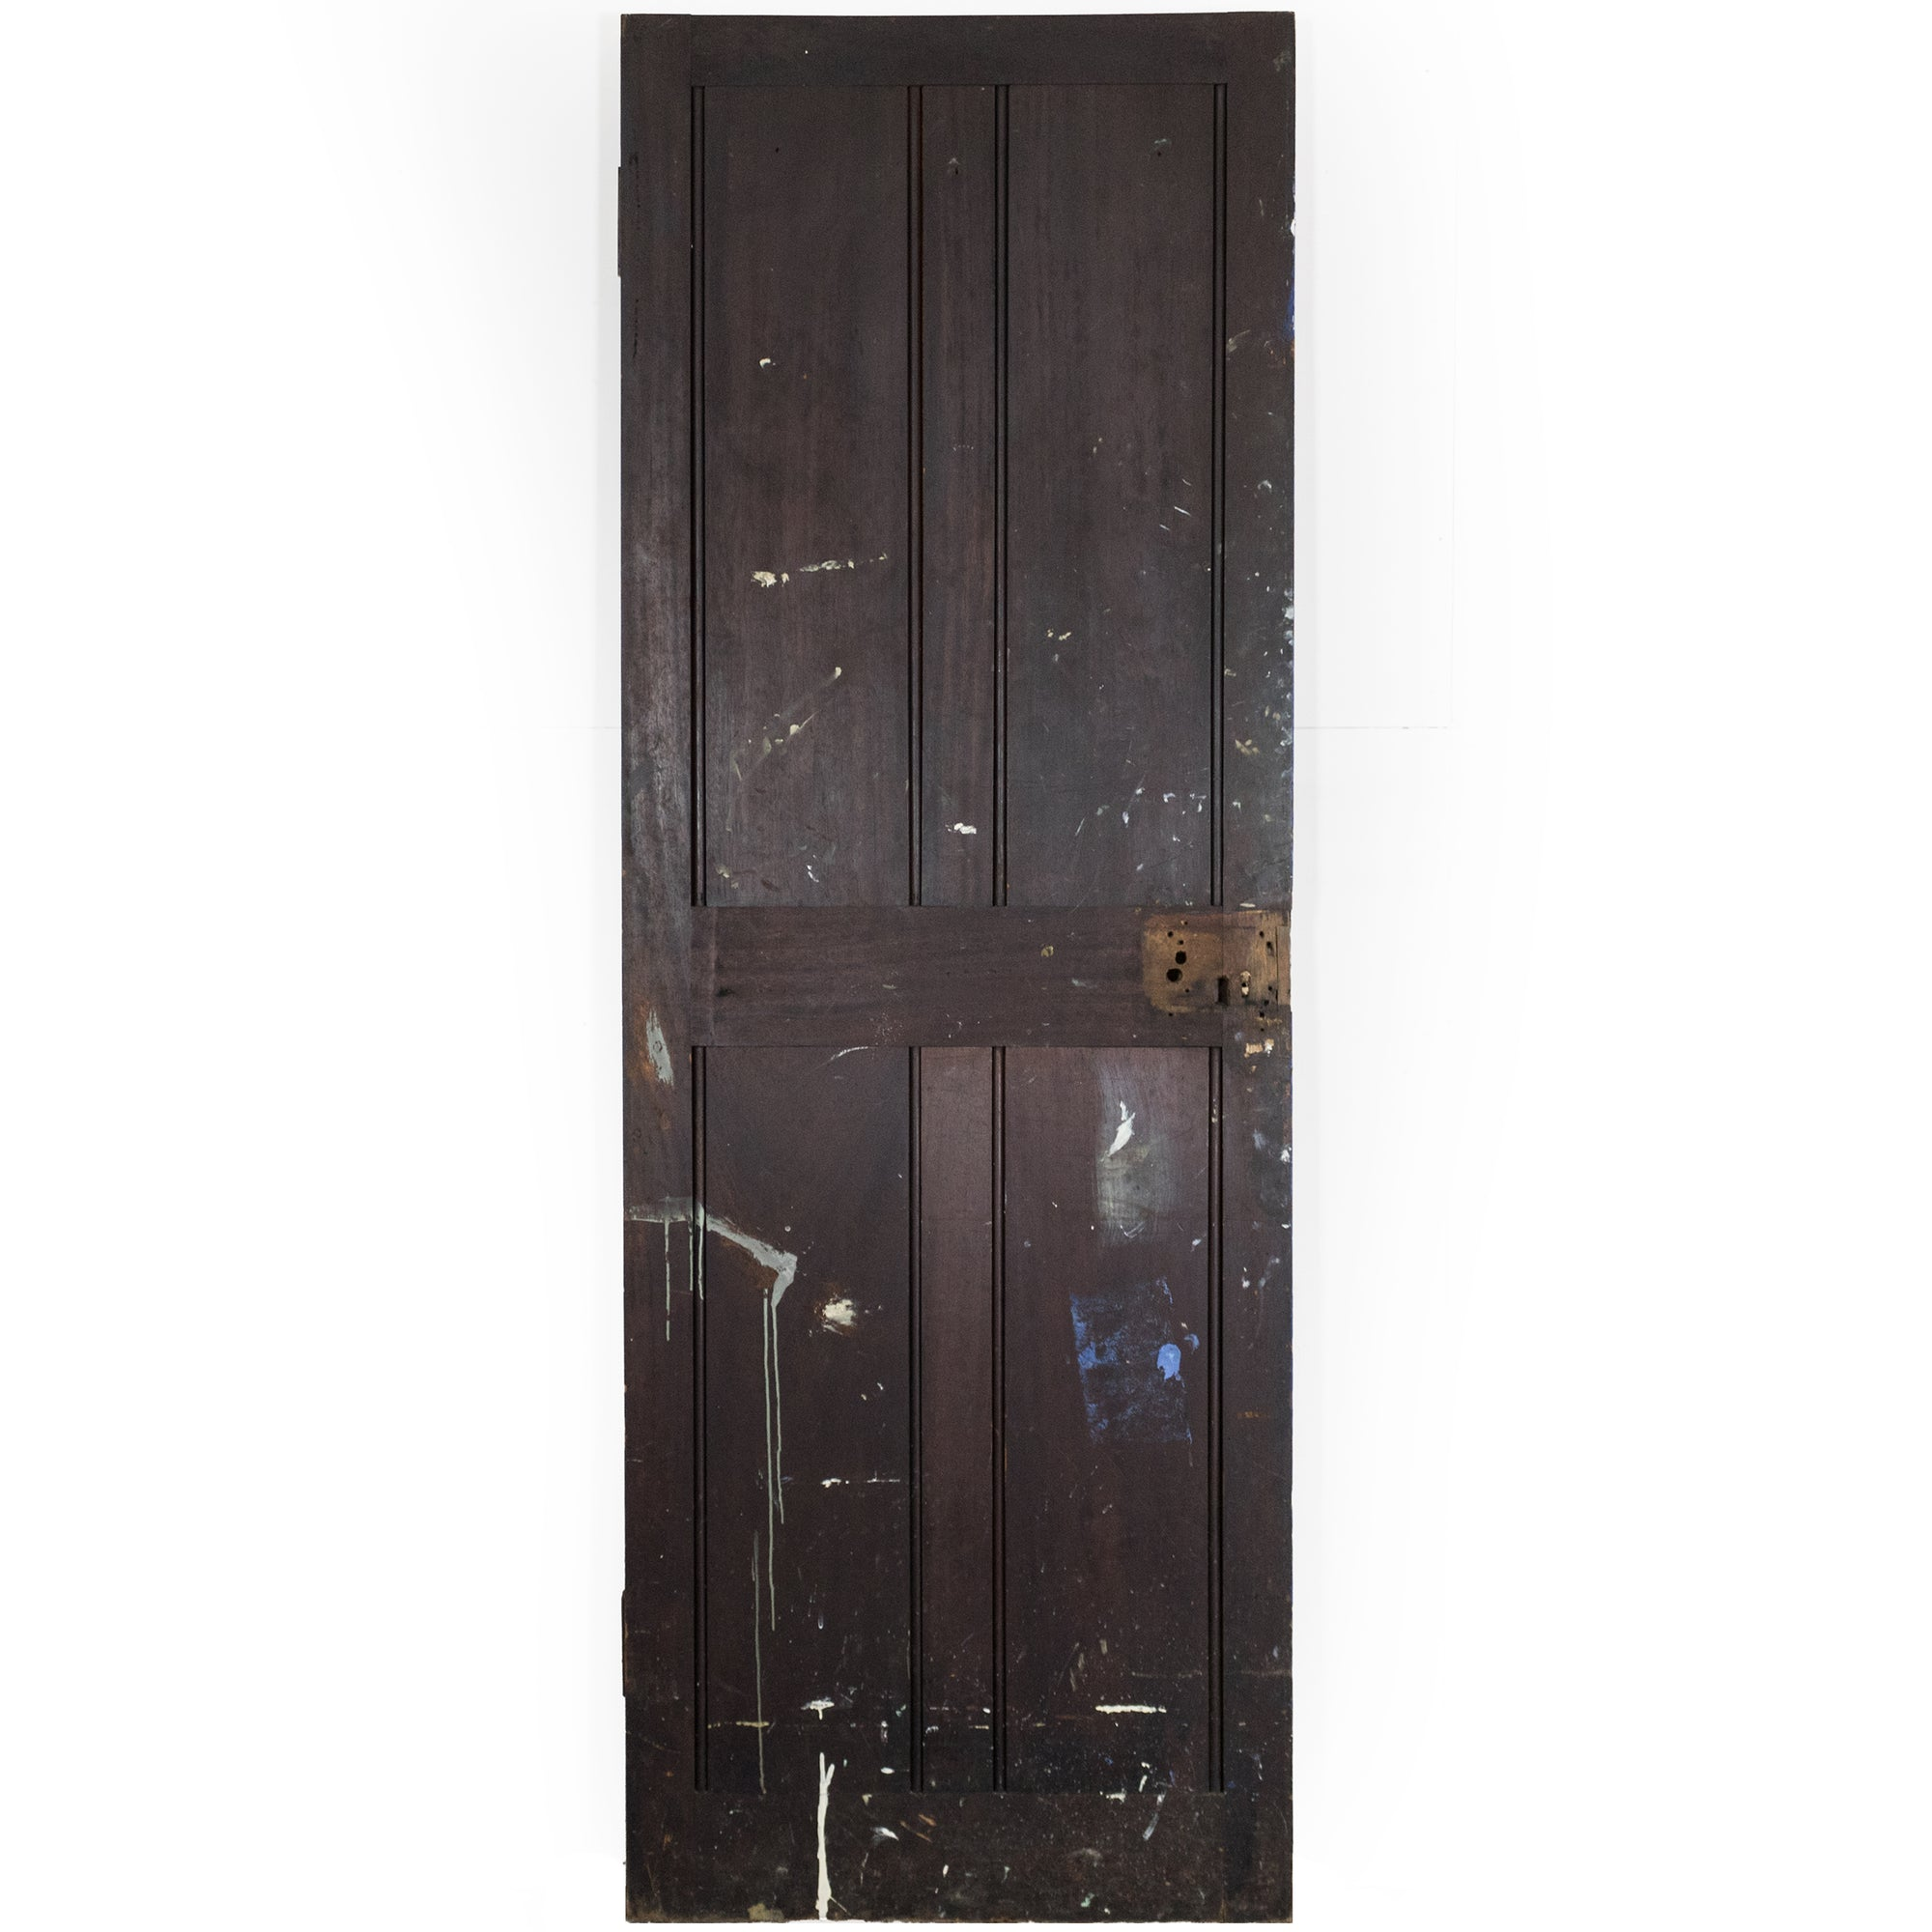 Antique Reclaimed Teak Four Panel Door - 194cm x 68.5cm x 3.5cm | The Architectural Forum